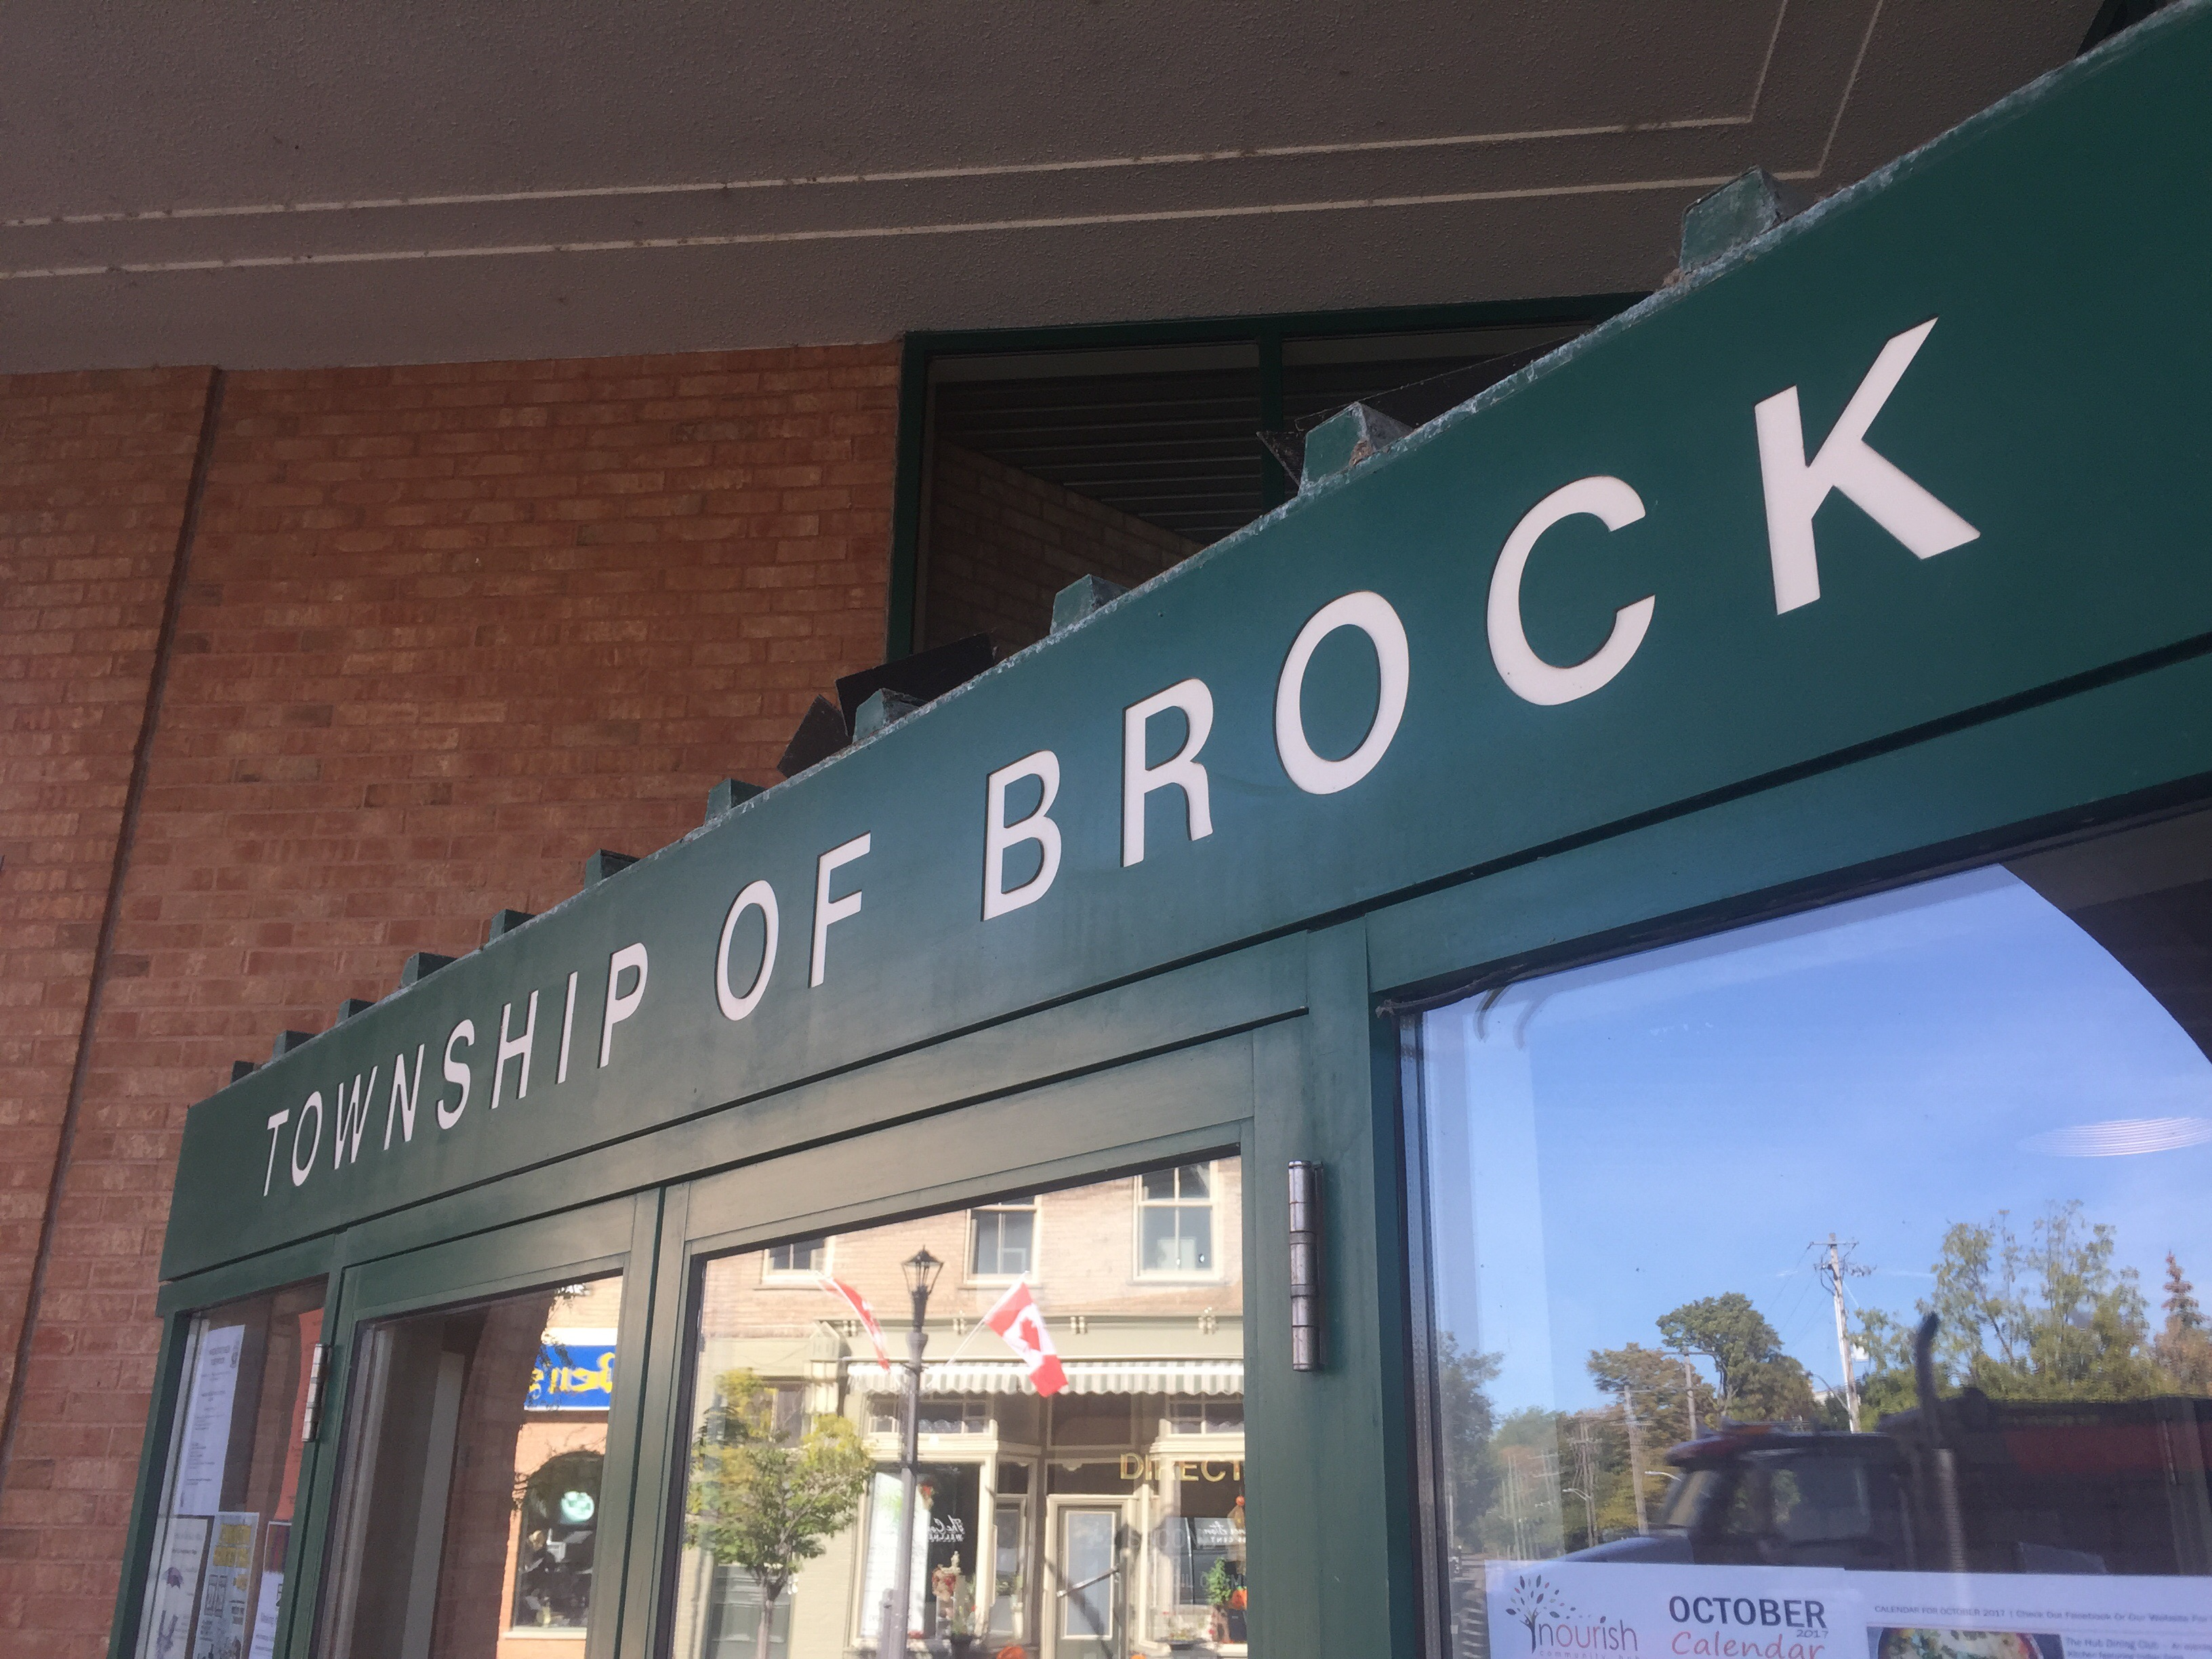 Share your two cents as Brock Township prepares budget